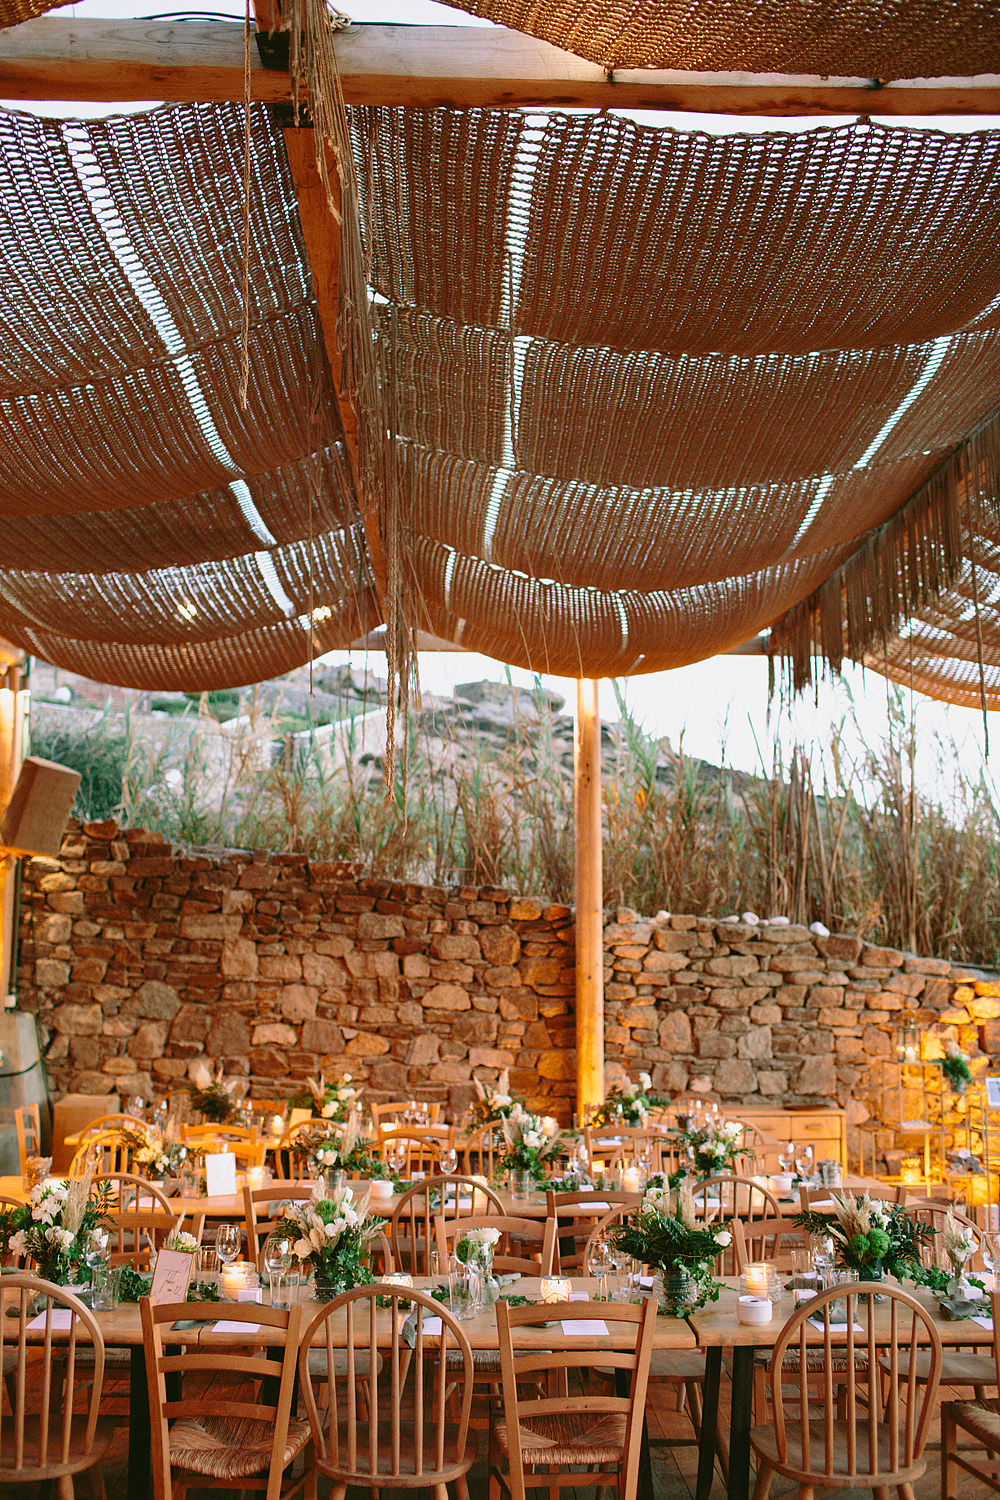 Wedding_Destination_Mykonos_Island_Ceremony_Greenery_Chic_Boho_Event_Planning